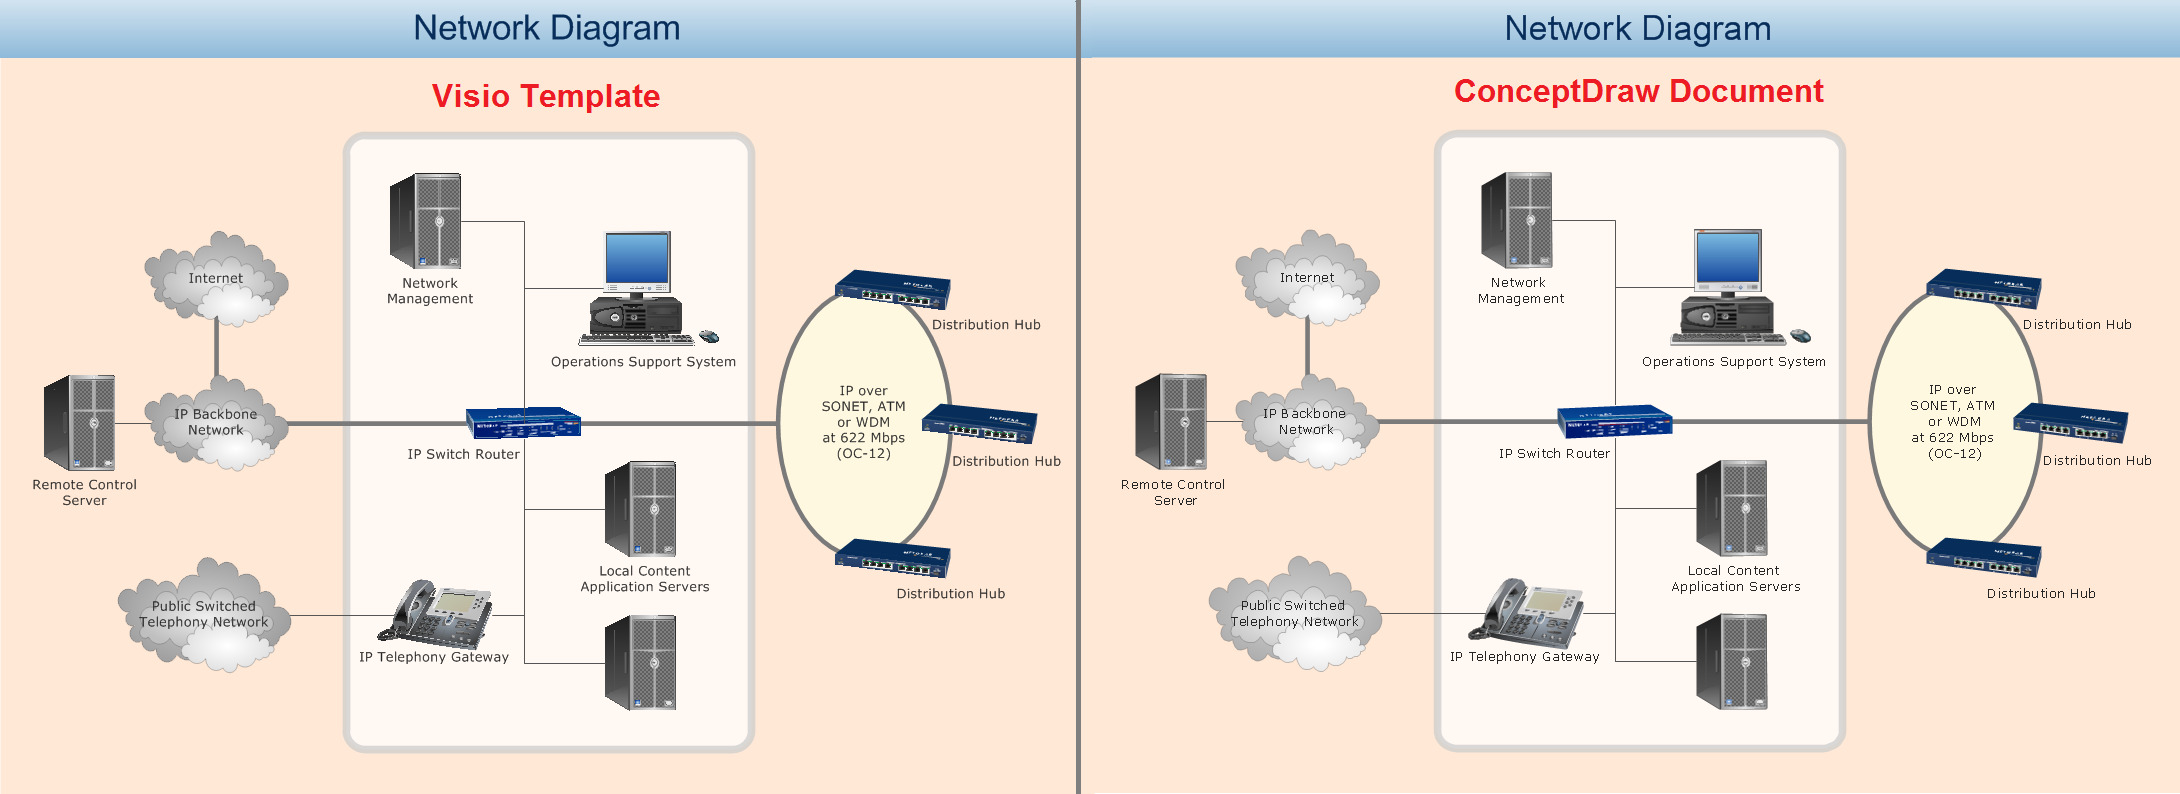 conceptdraw samples   visio replacementsample   network diagram